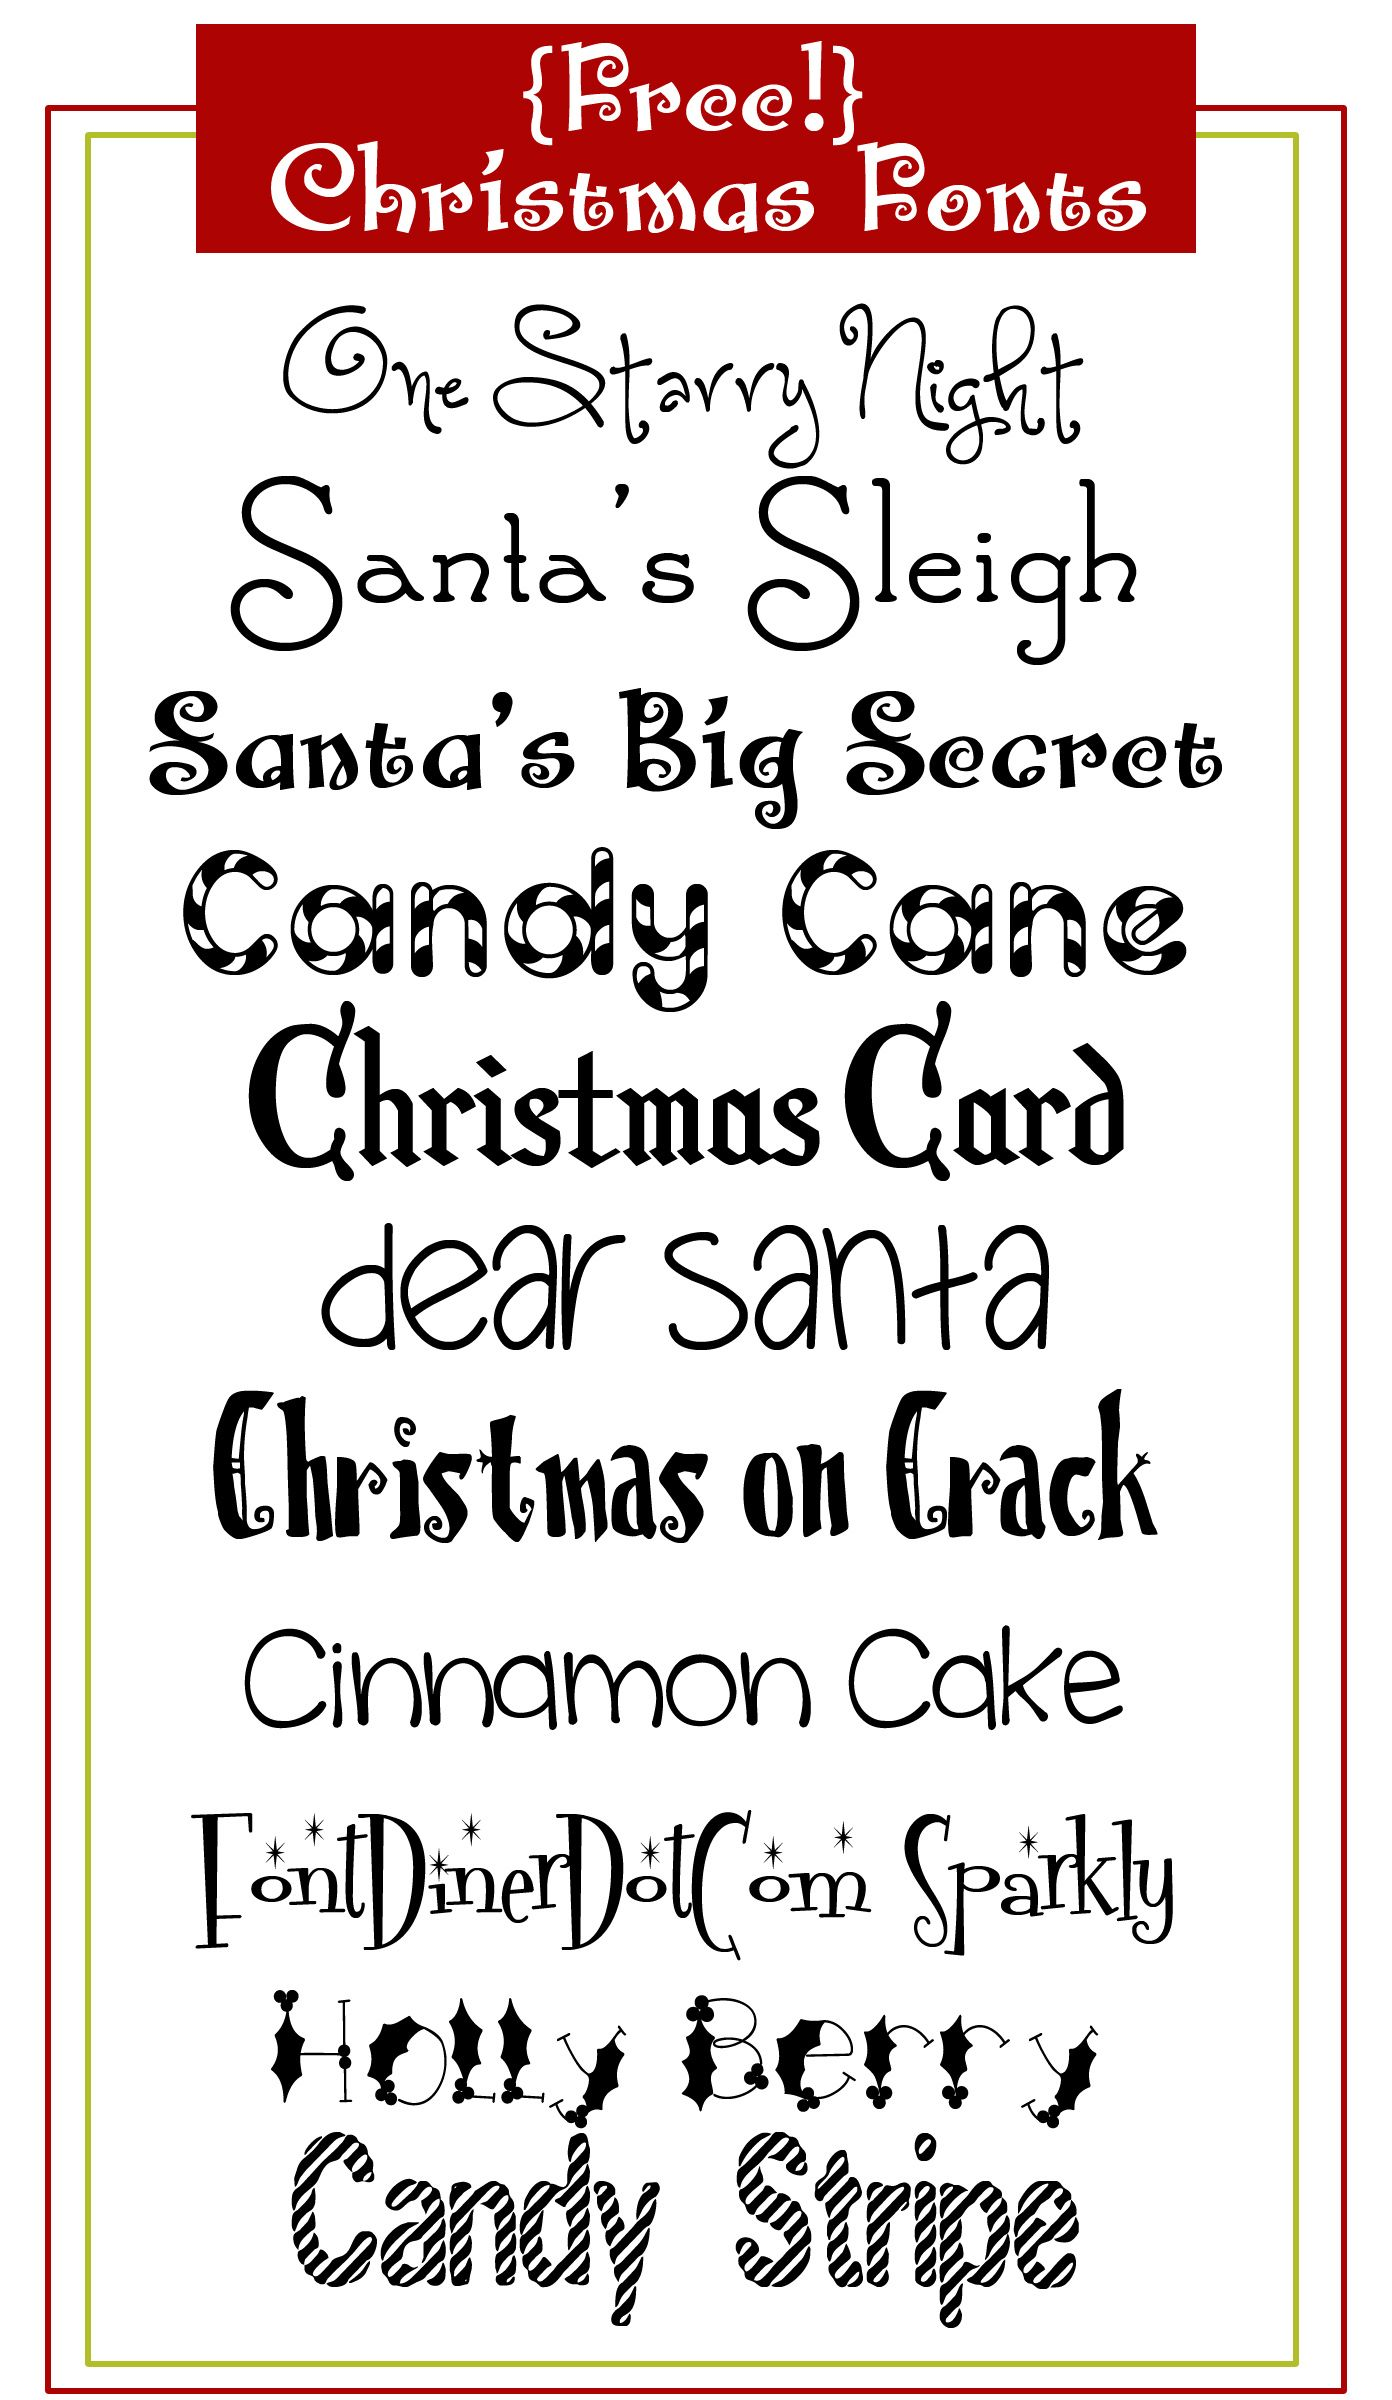 Free Christmas Fonts | Christmas fonts and Fonts